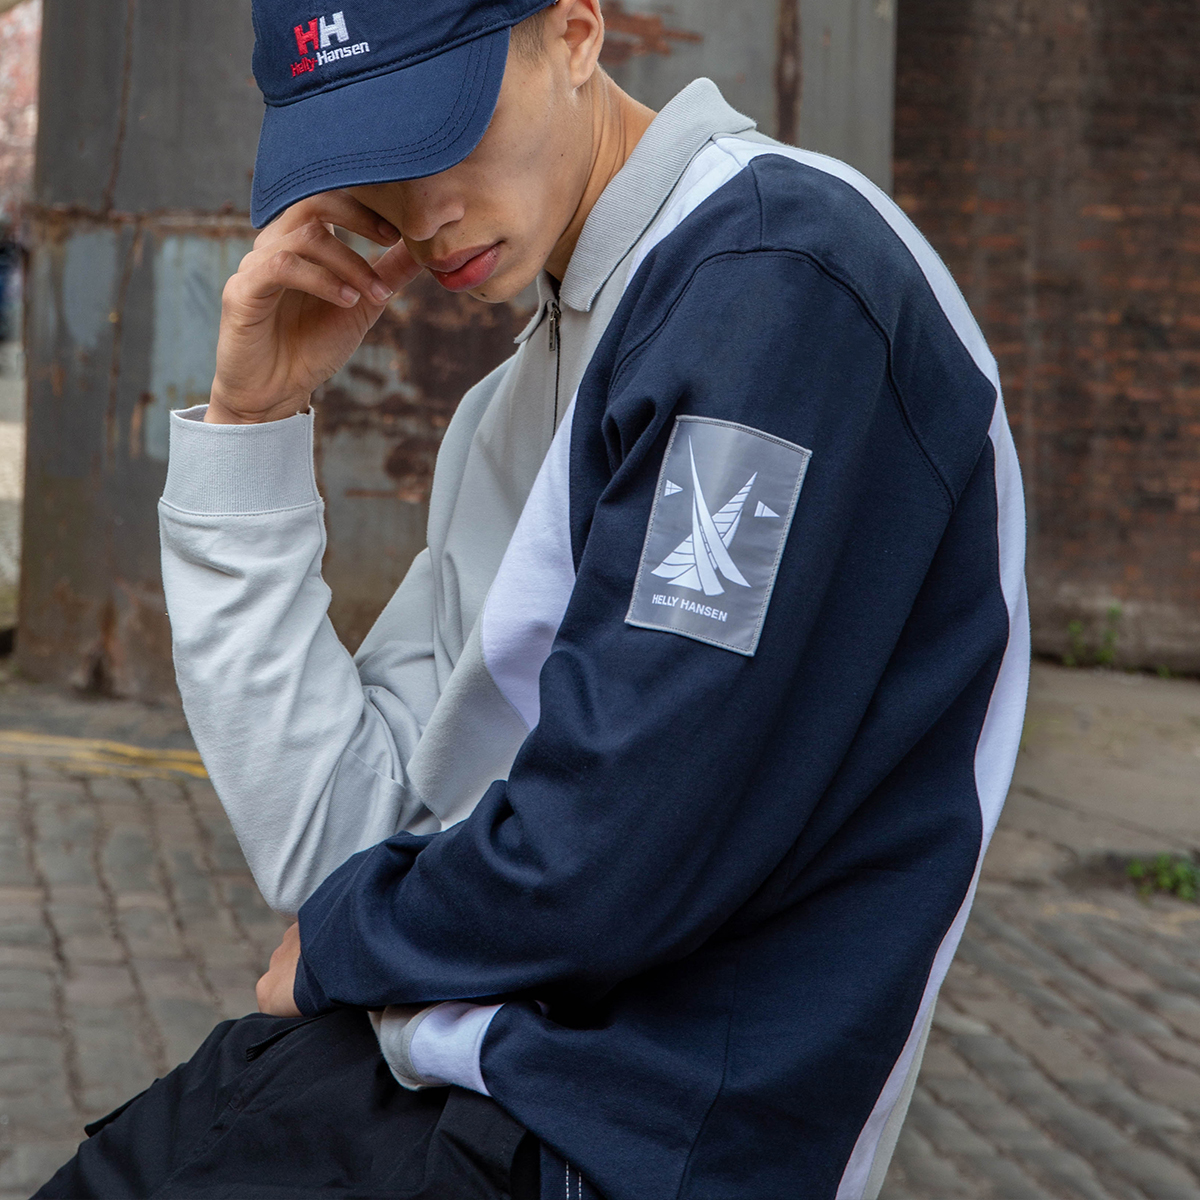 A man is sat looking down so his face is hidden beneath his Helly Hansen cap. He is wearing black trousers and a blue and white Helly Hansen polo shirt.